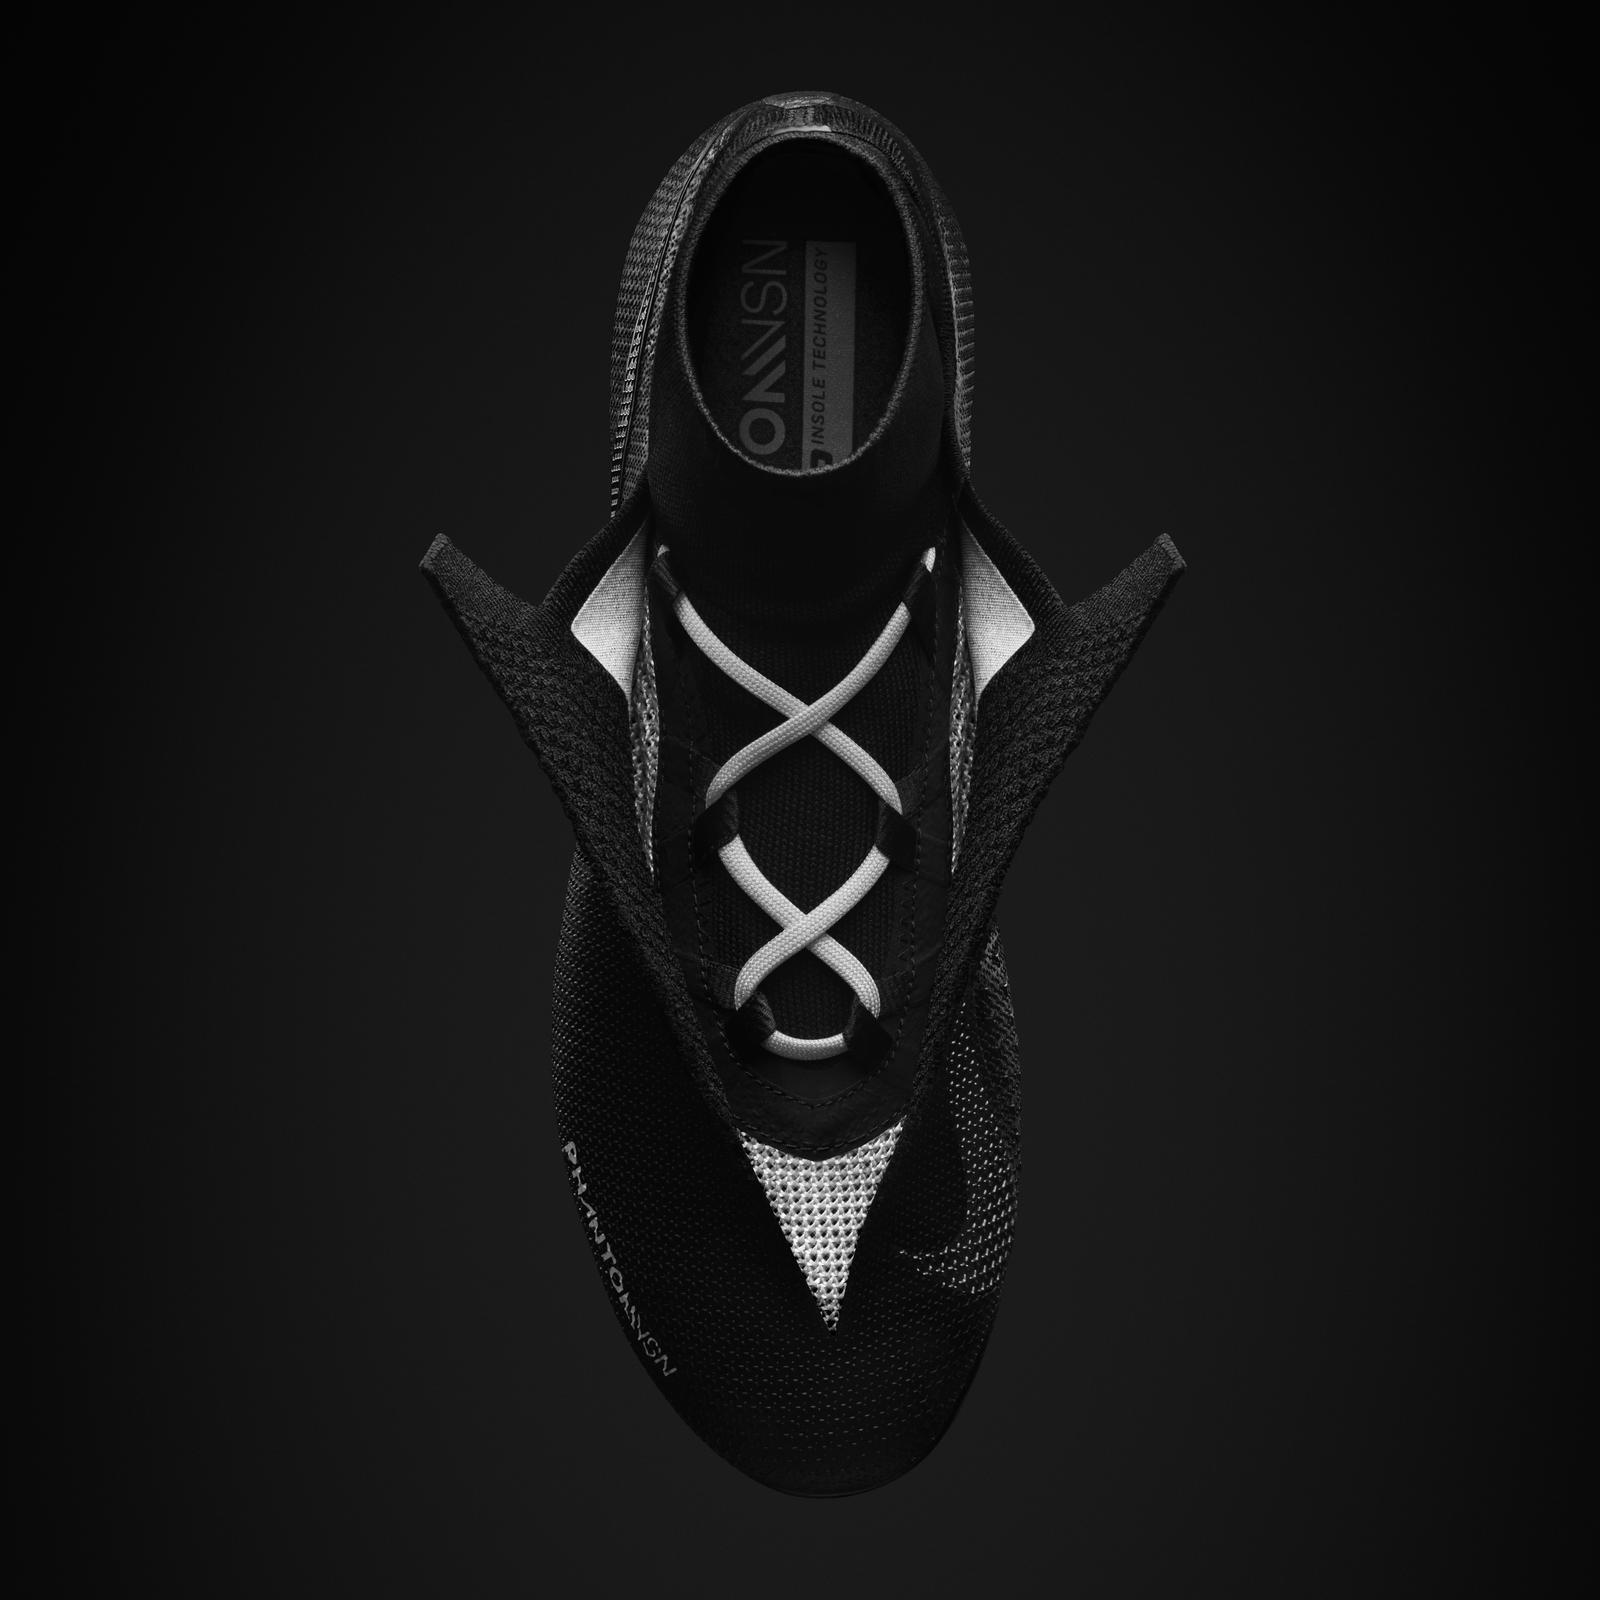 What's Unseen is a Game Changer: The PhantomVSN - Nike News